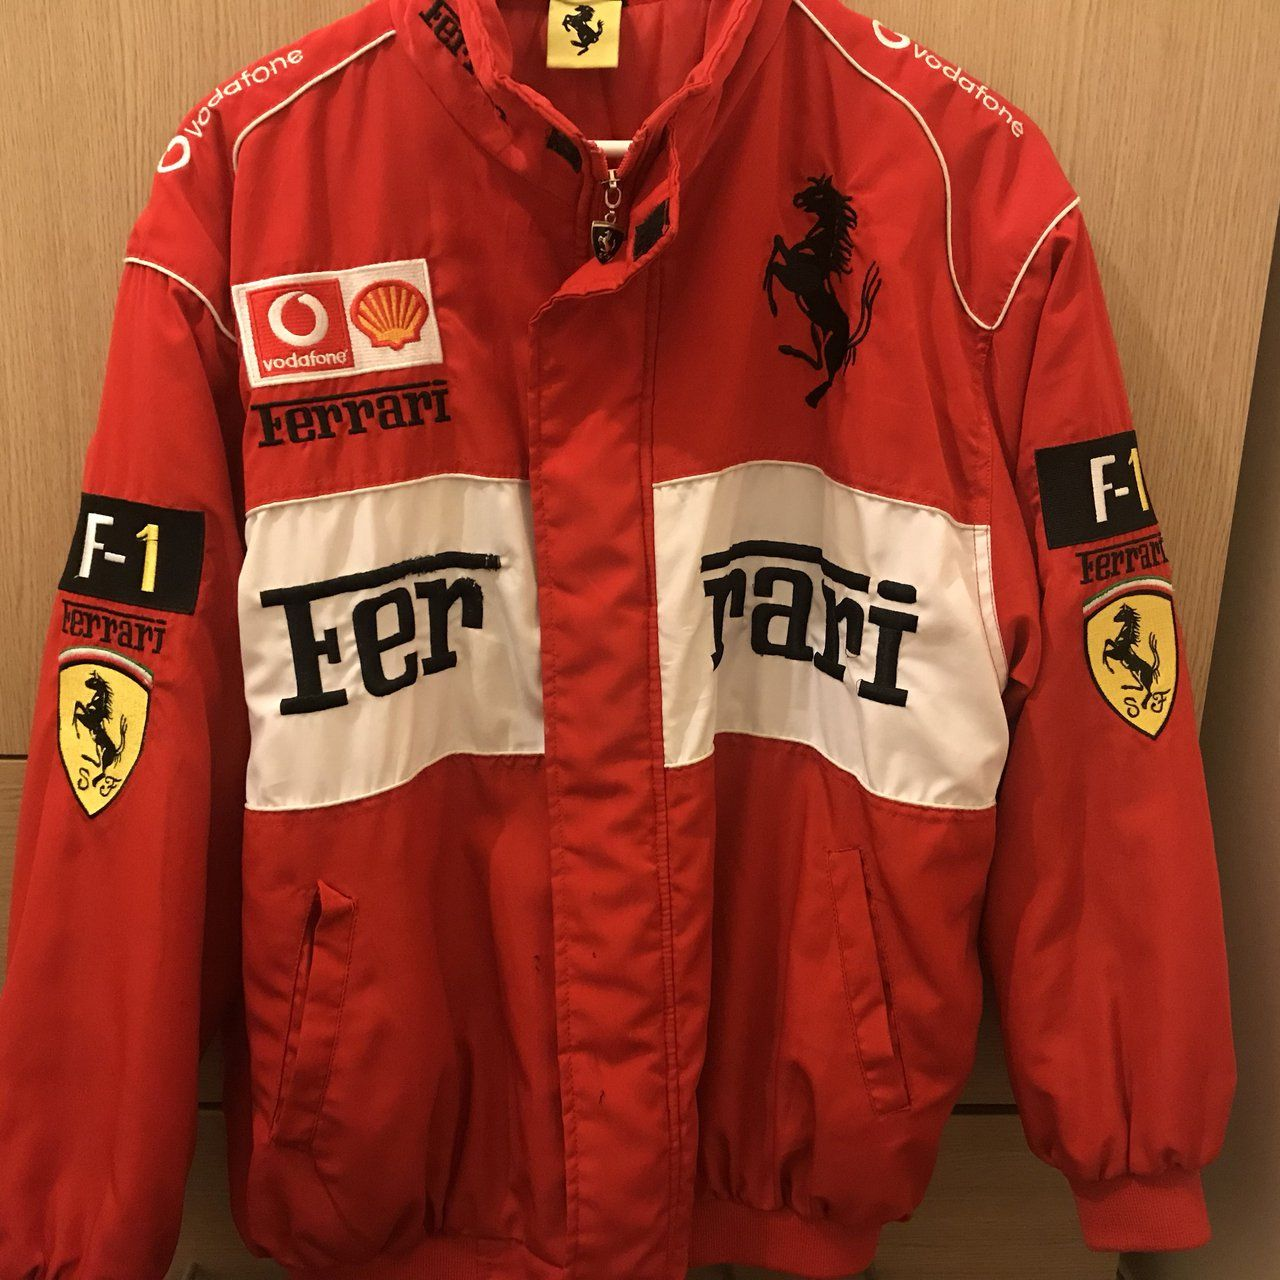 Vintage Red Ferrari Jacket As seen on Lana Del Rey for live